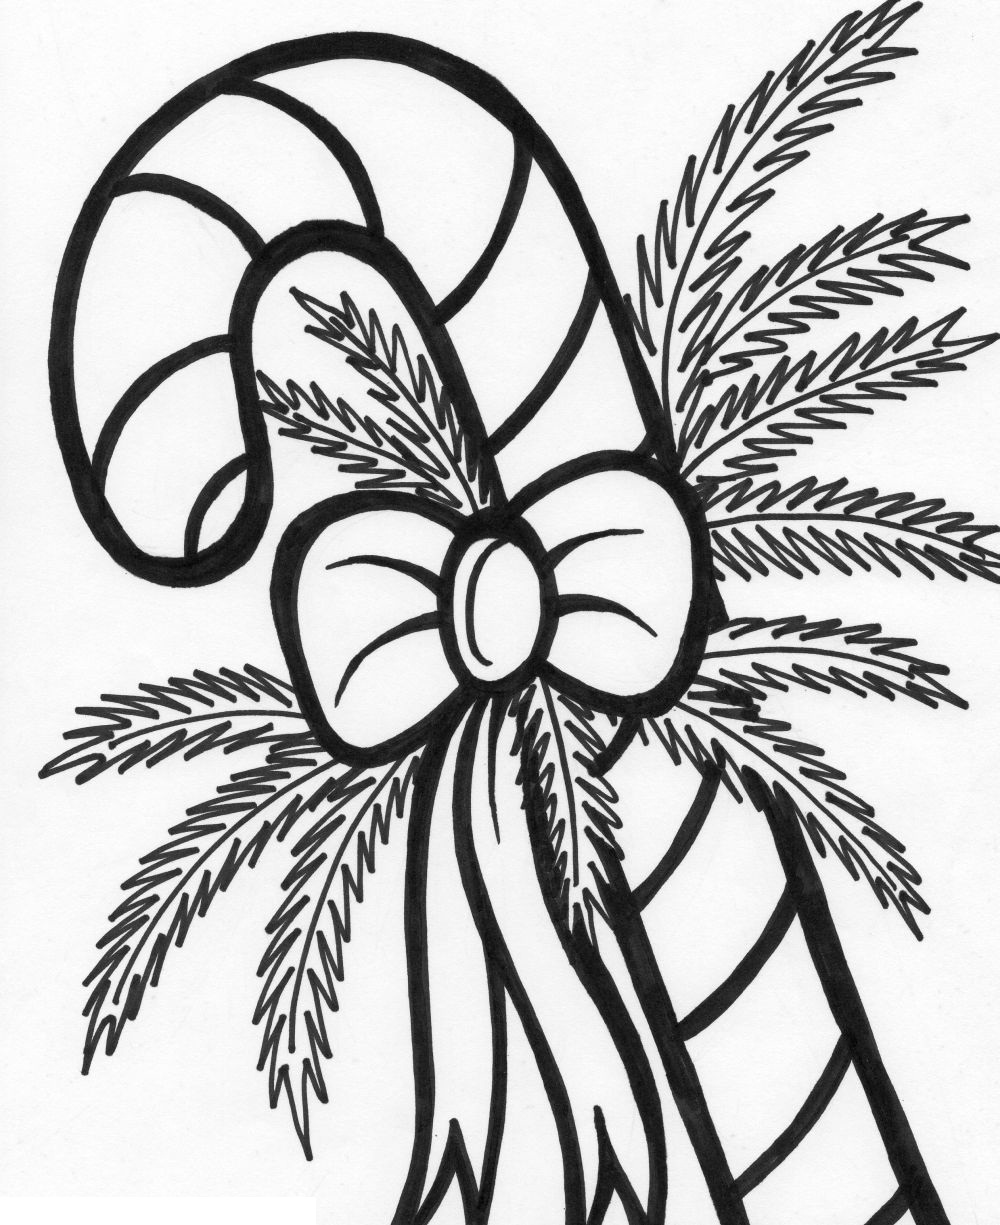 candy cane coloring page free printable candy cane coloring pages for kids coloring page cane candy